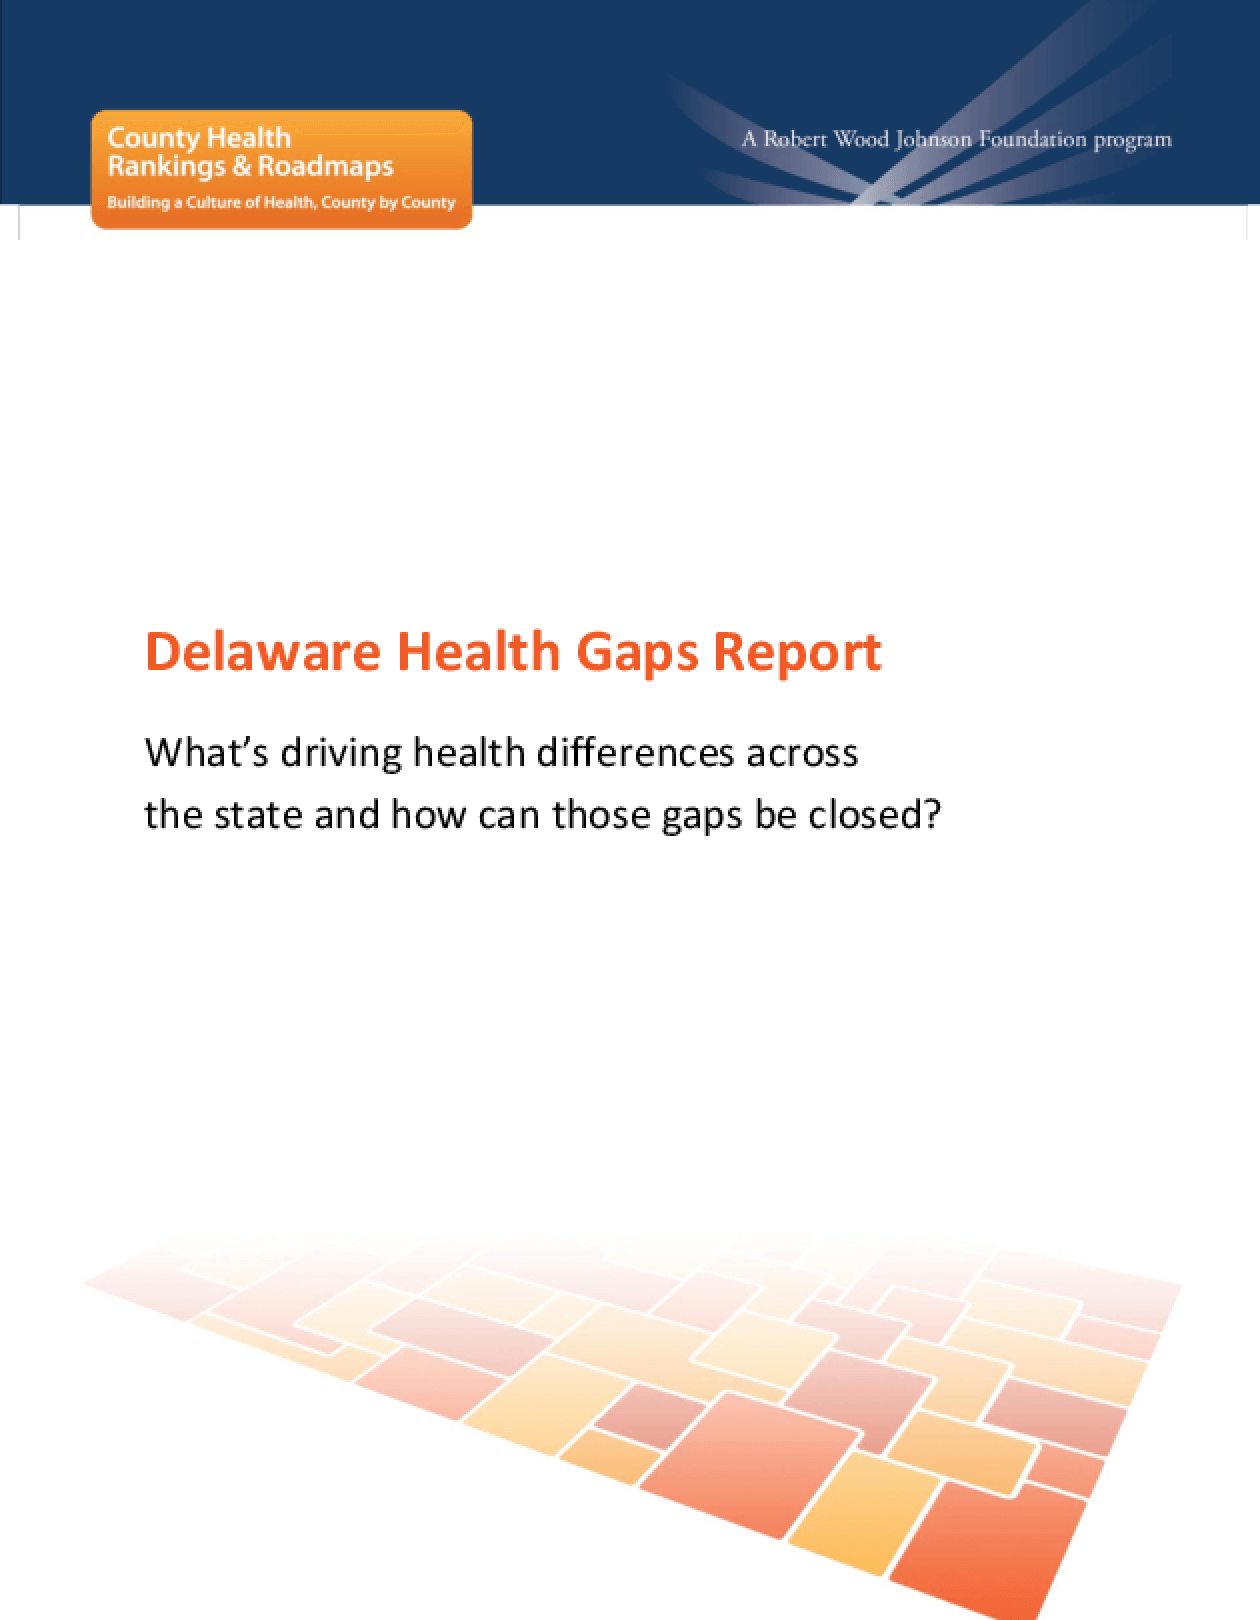 Delaware Health Gaps Report: What's Driving Health Differences Across the State and How Can Those Gaps Be Closed?